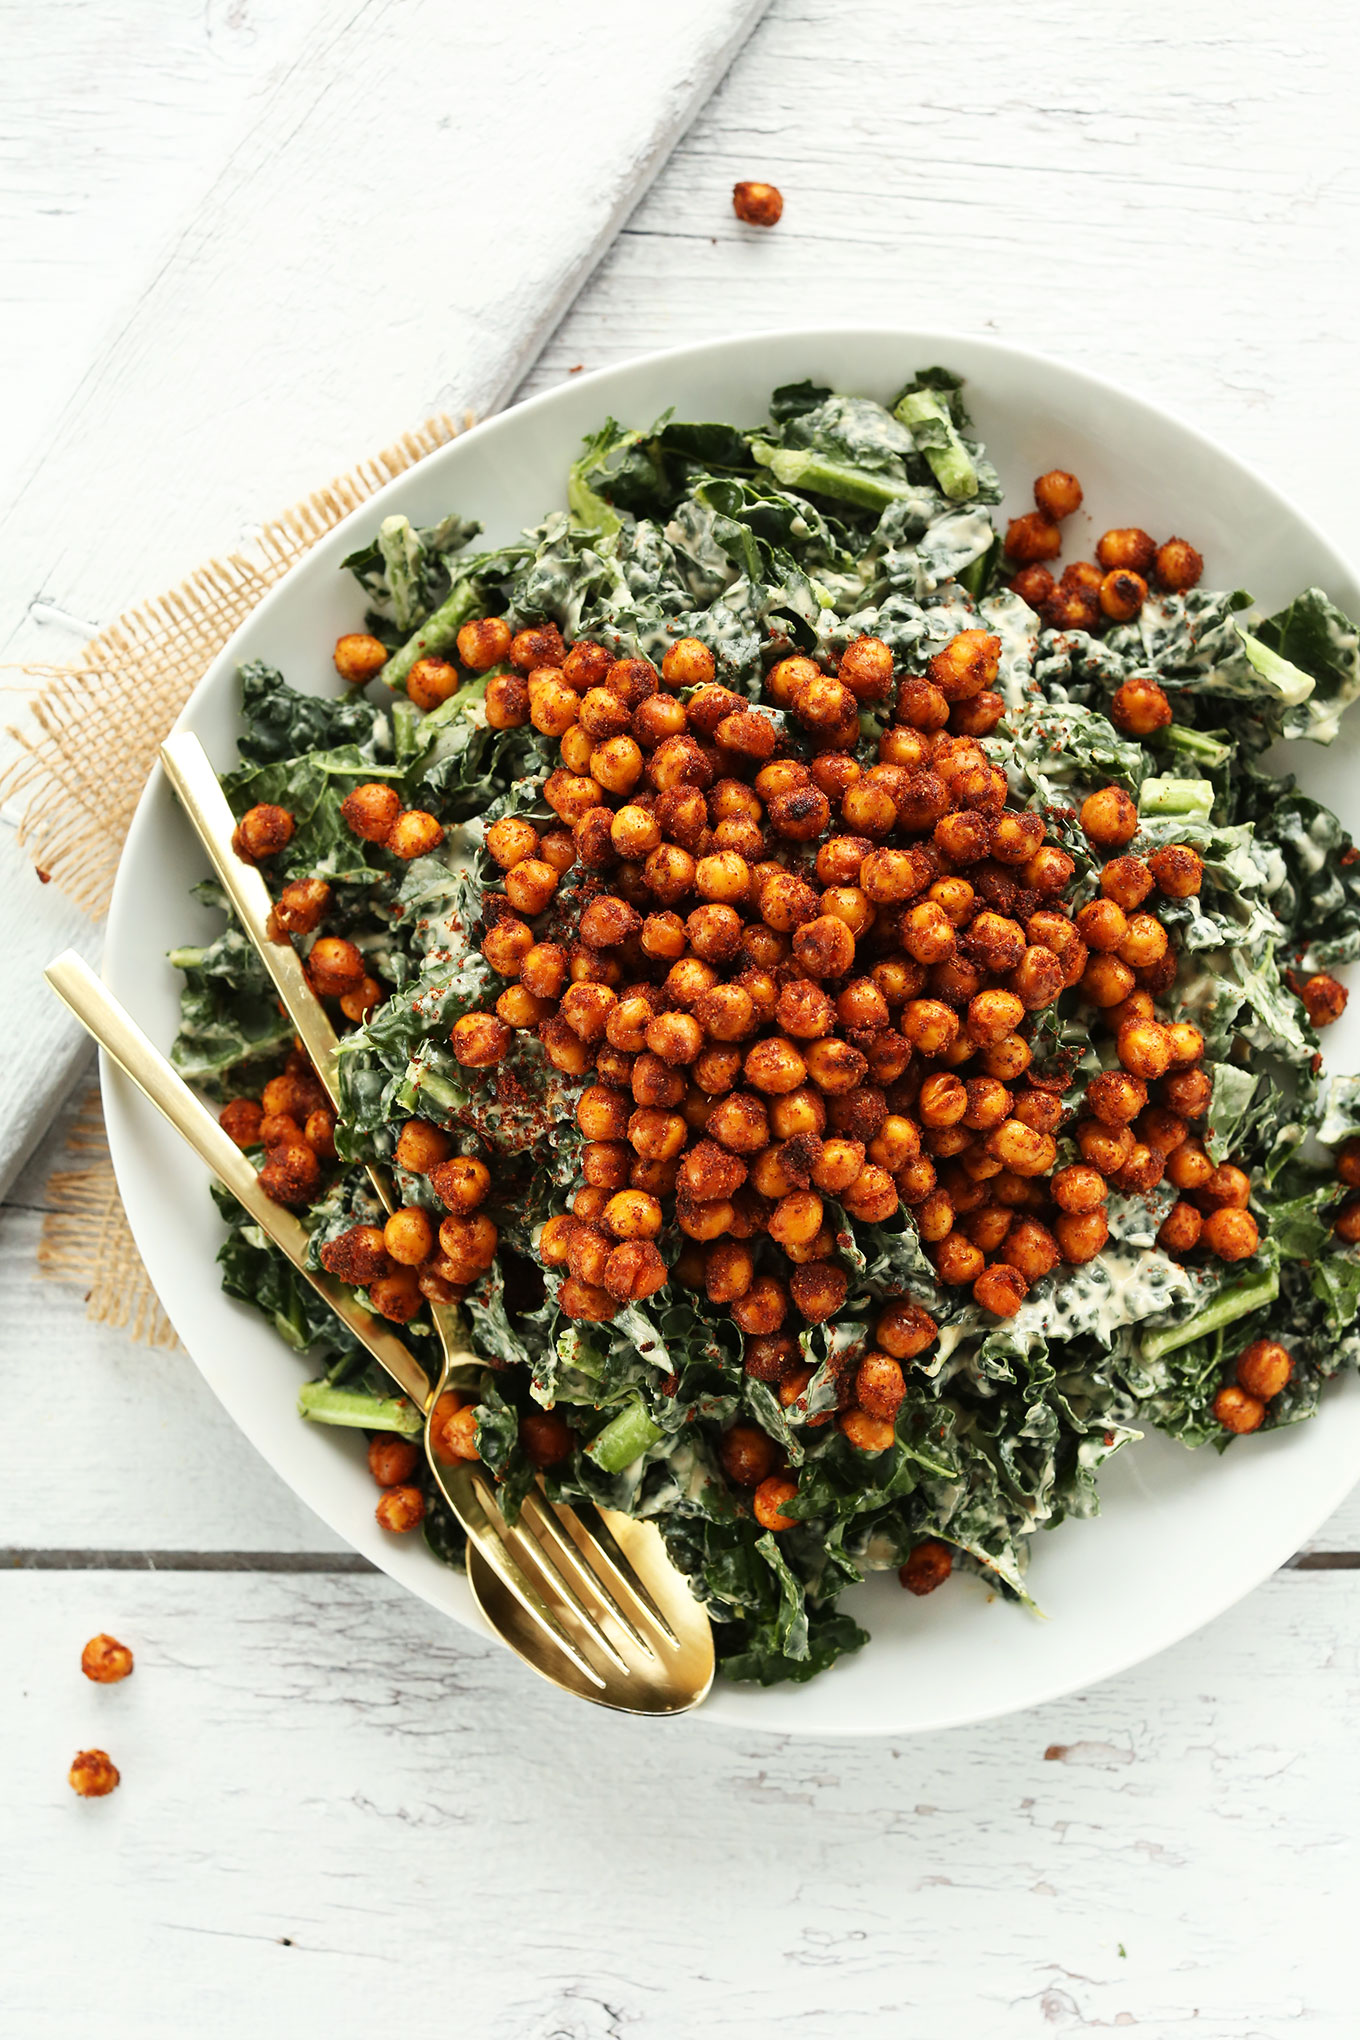 garlic kale with roasted chickpeas